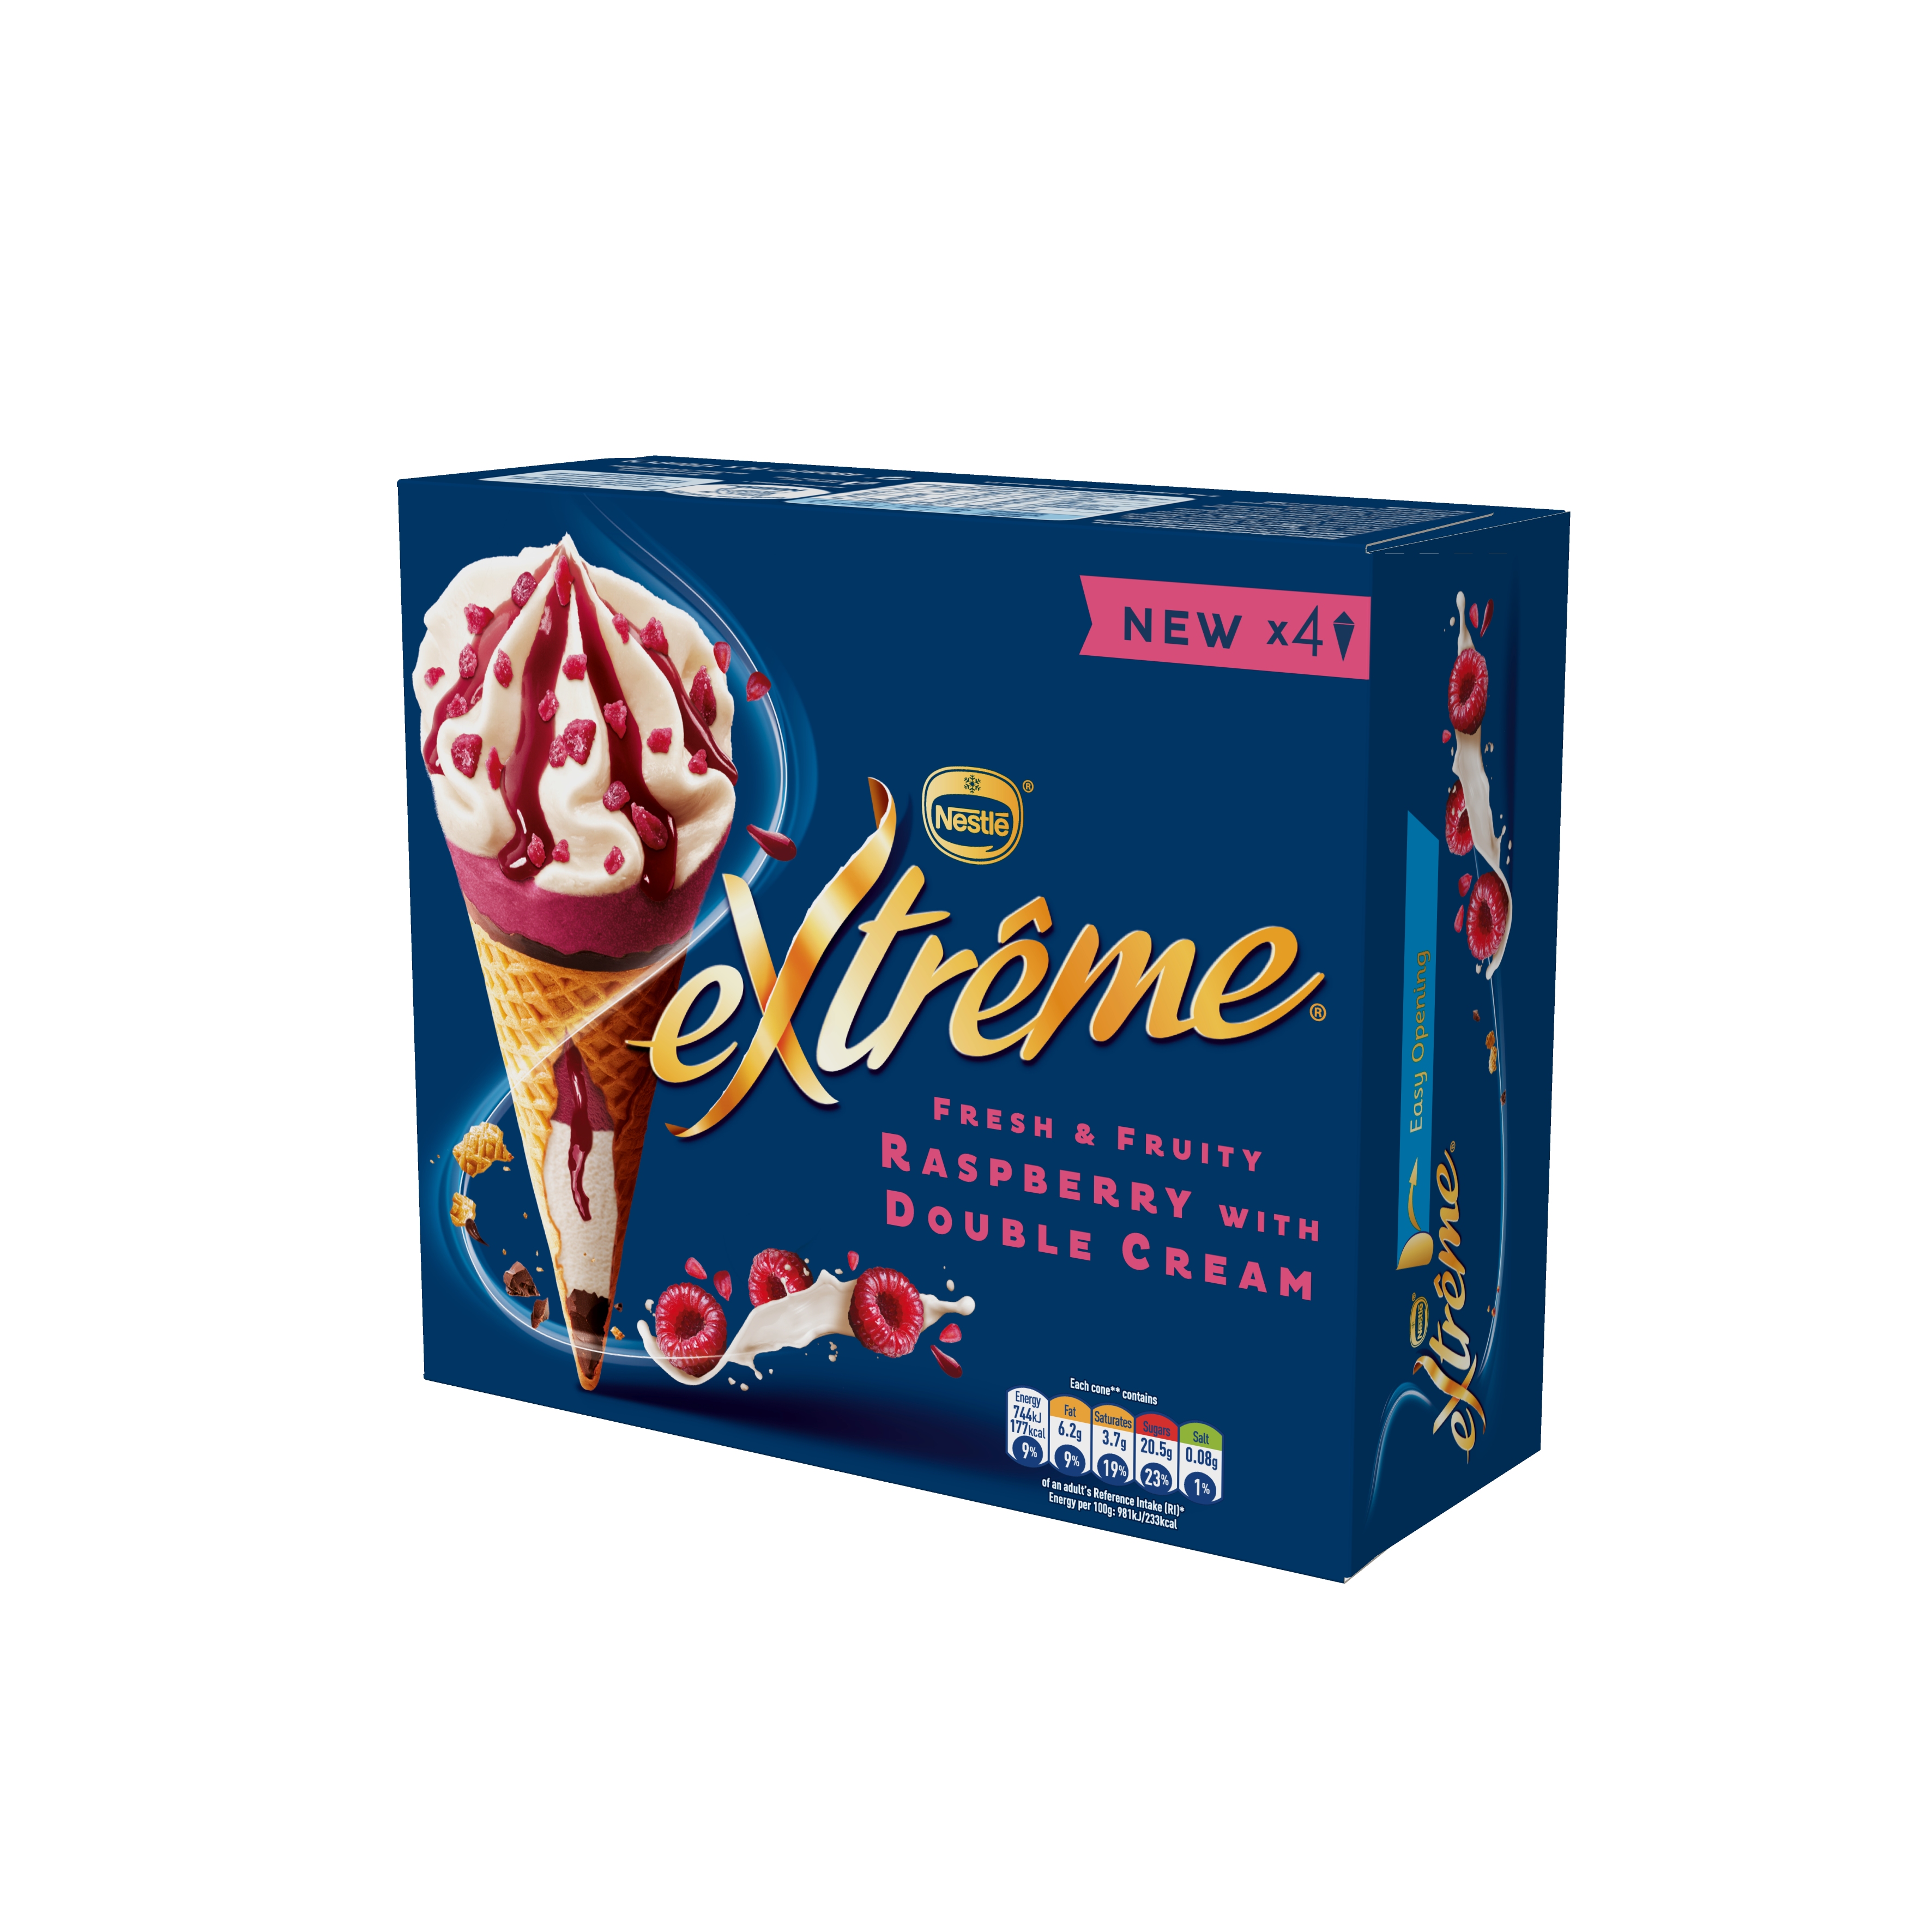 Extreme Raspberry and Cream